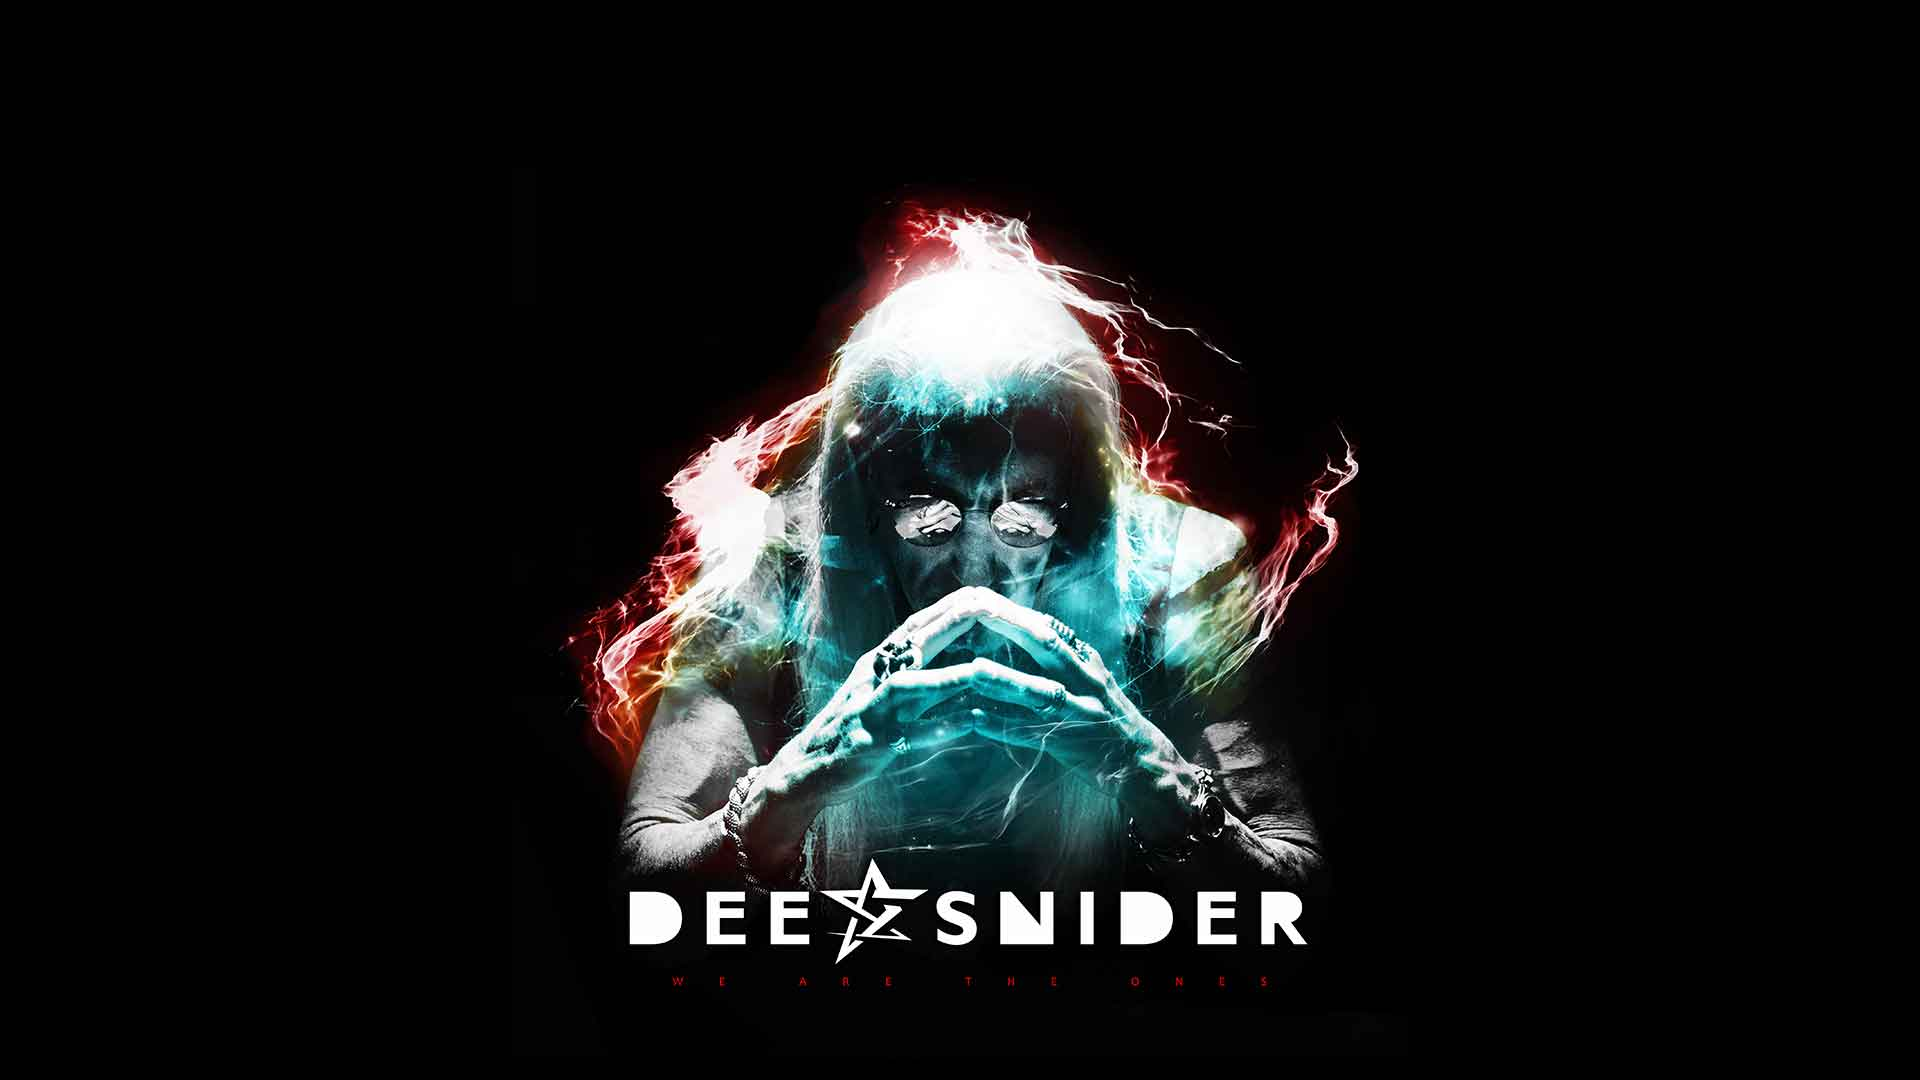 New Dee Snider Album Available Now!